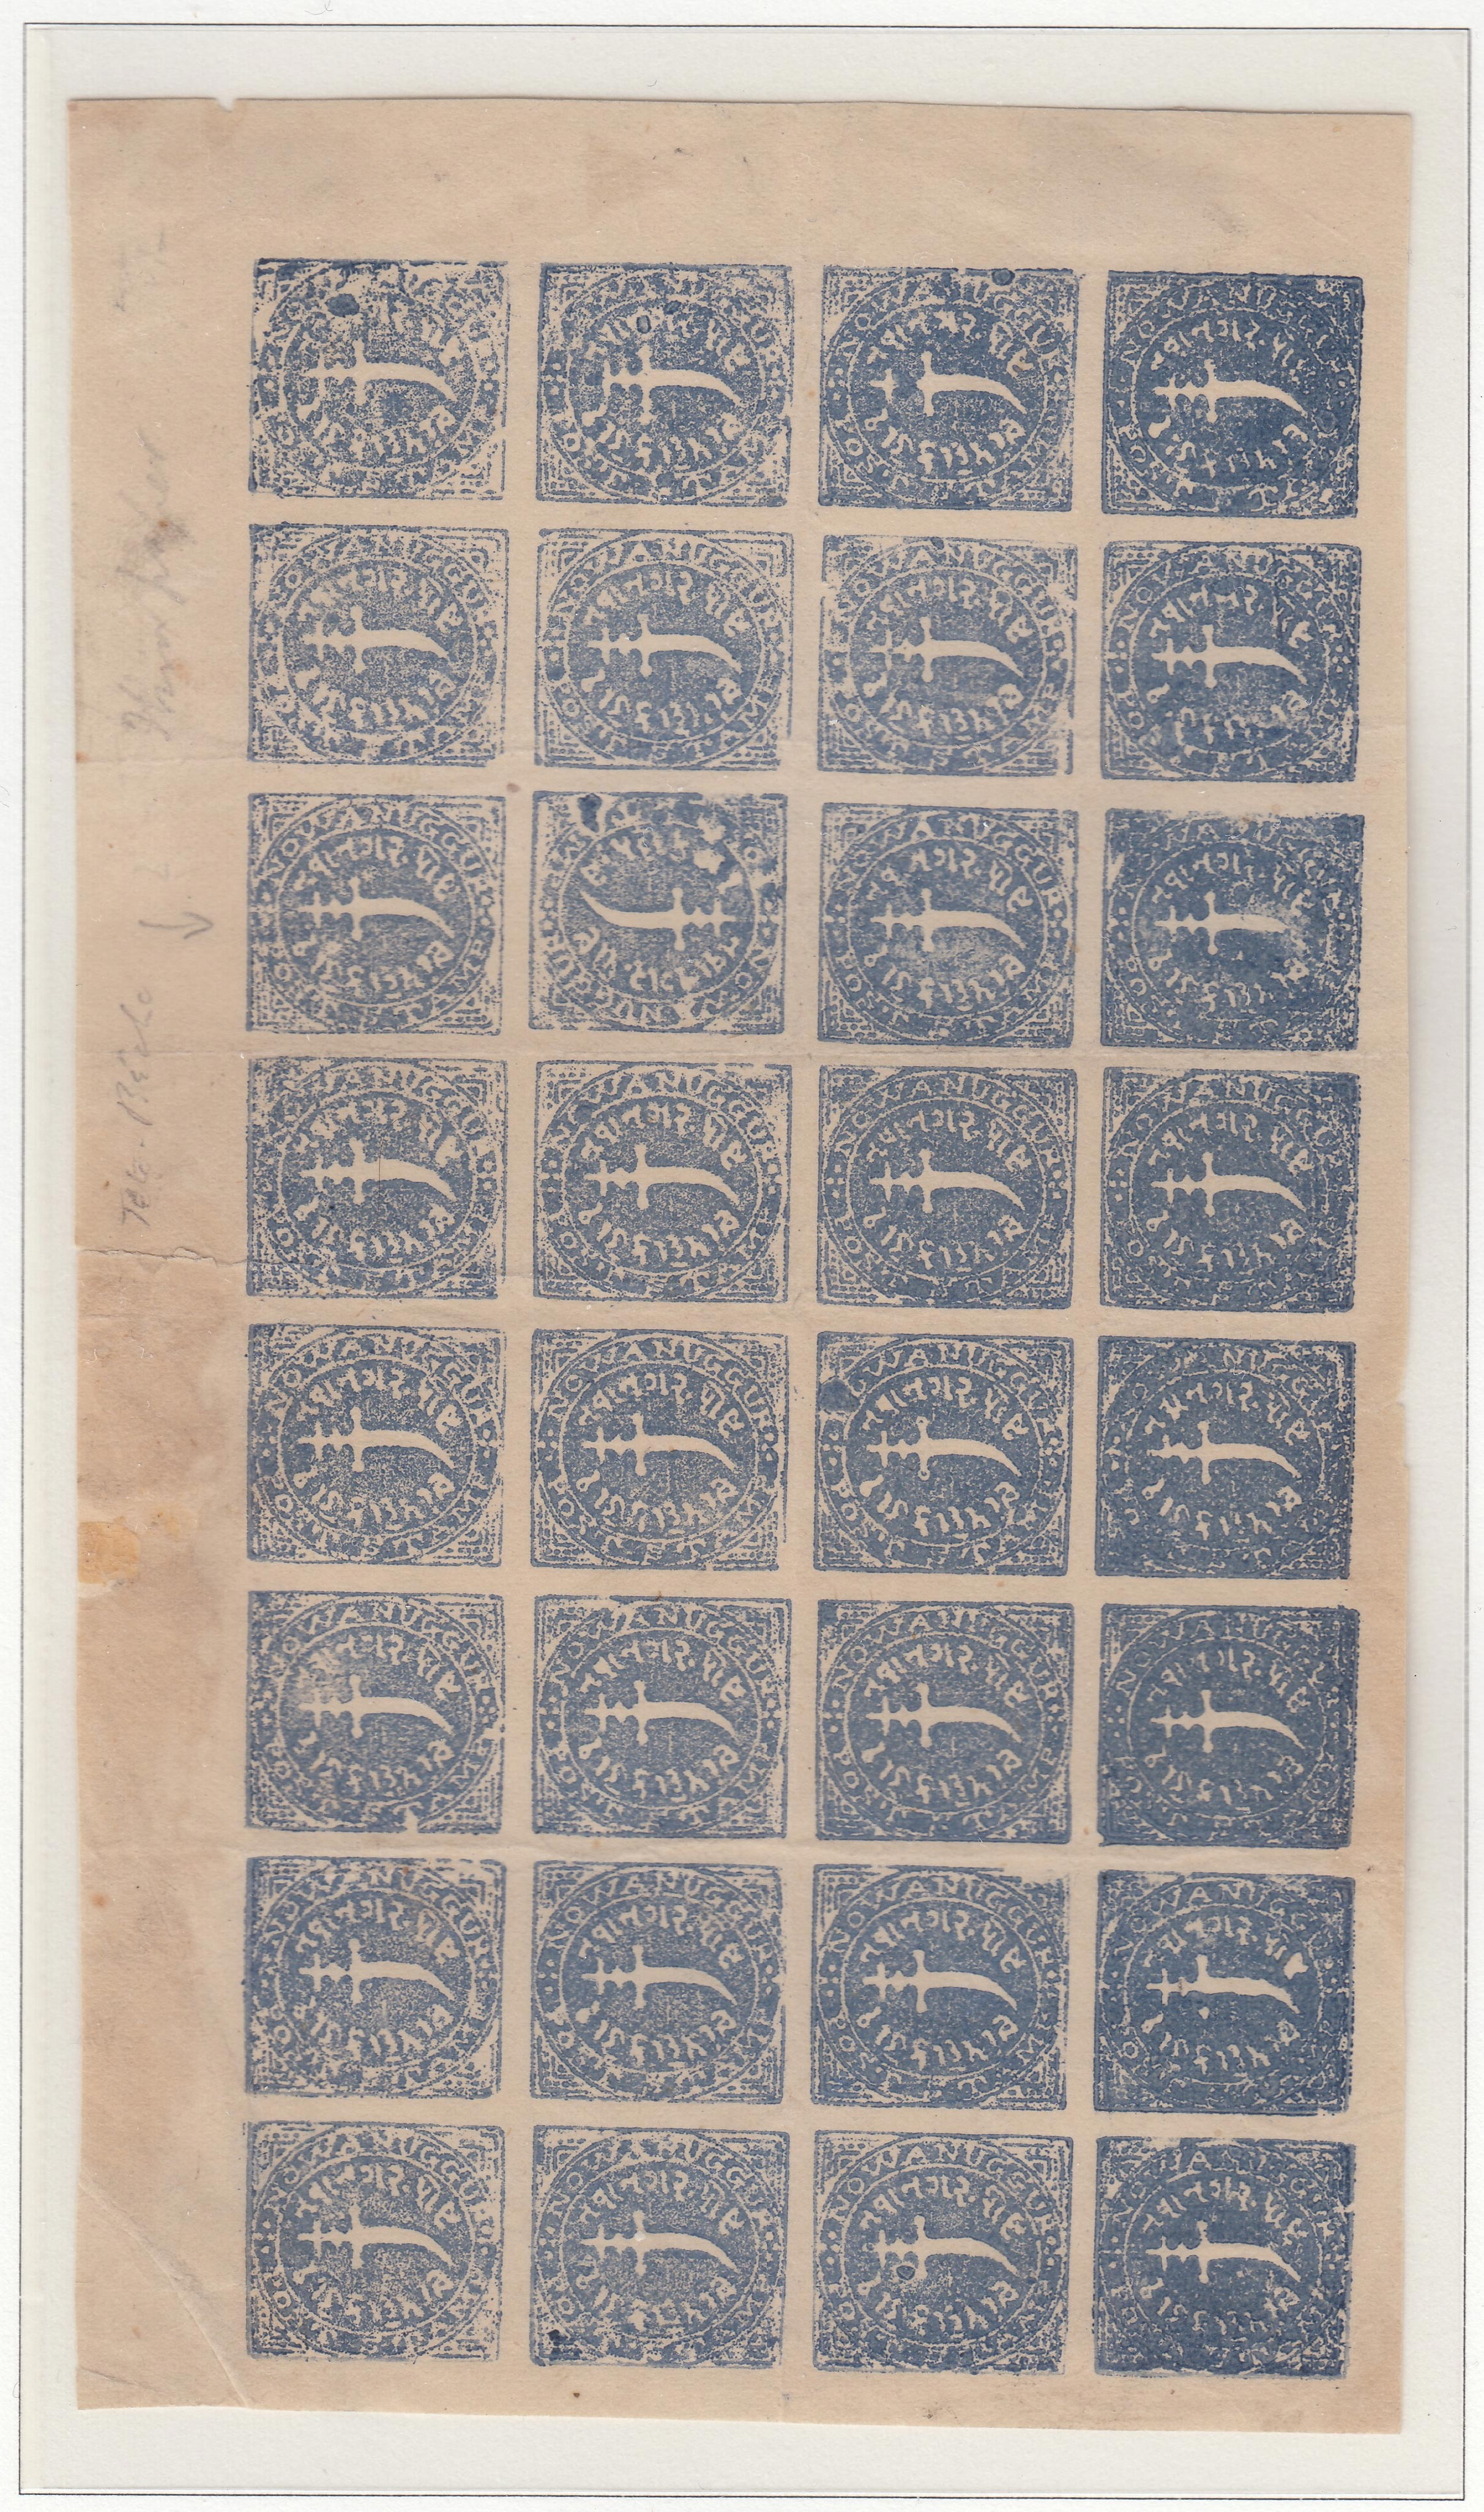 nawanagar-01-complete-imperforate-sheet-position-10-tete-beche